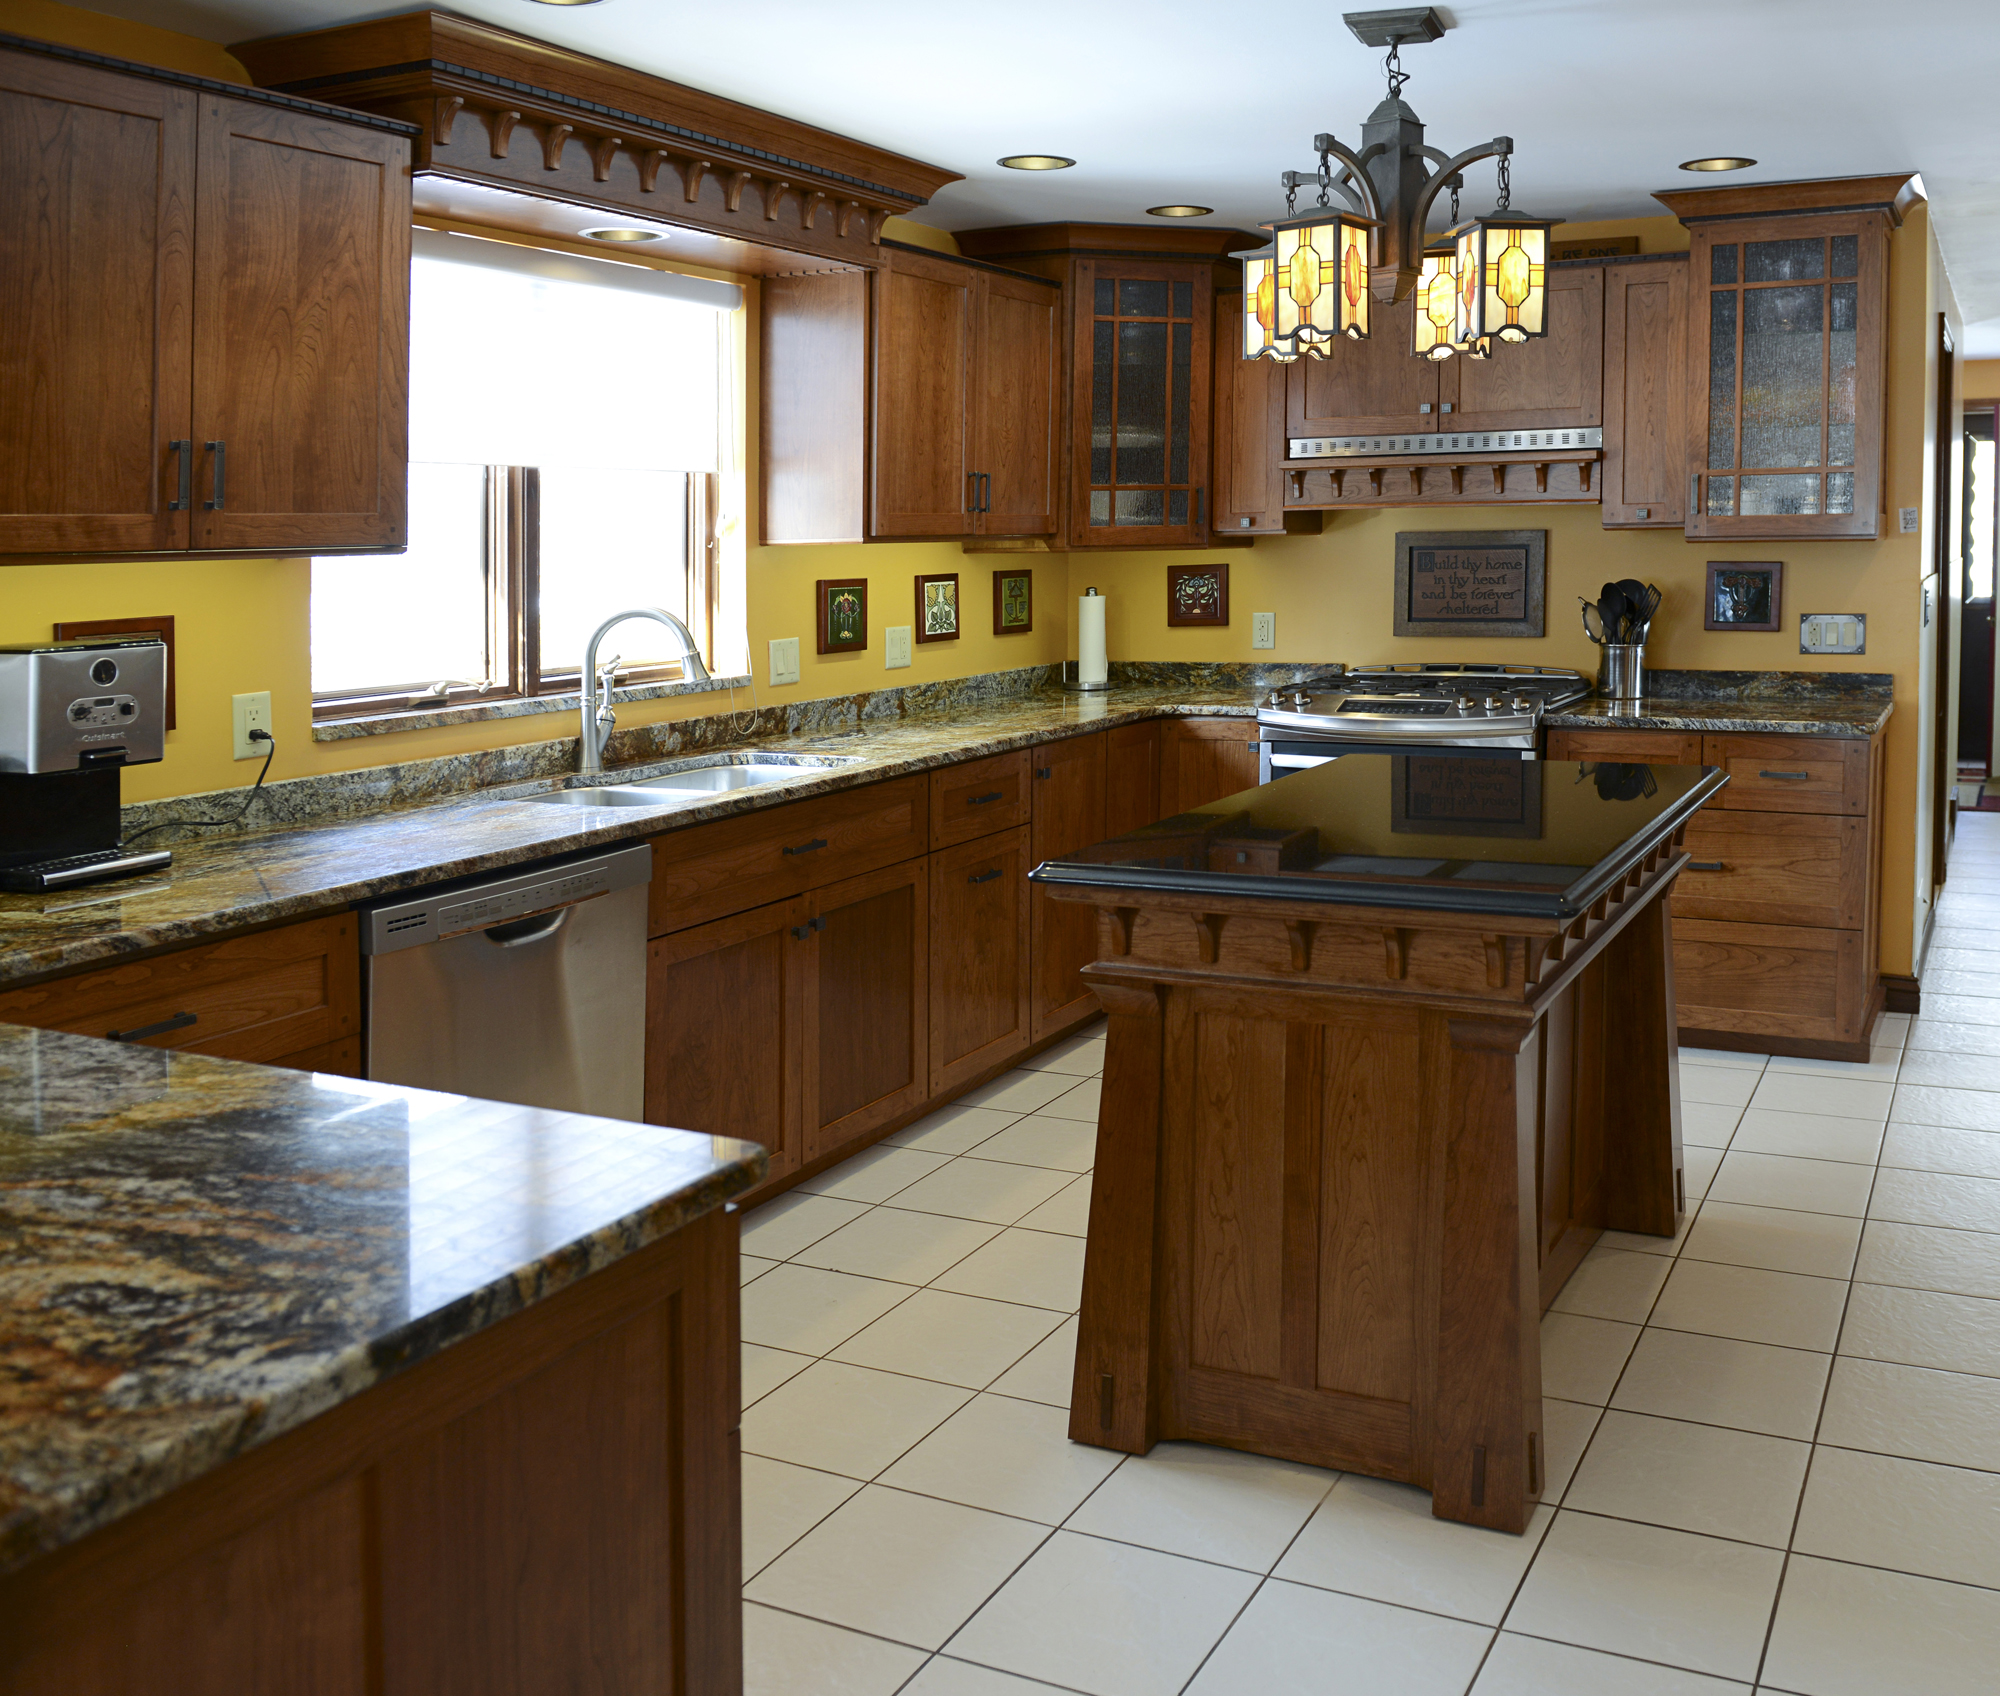 Amish Style Kitchen Cabinets: Amish Kitchen Gallery